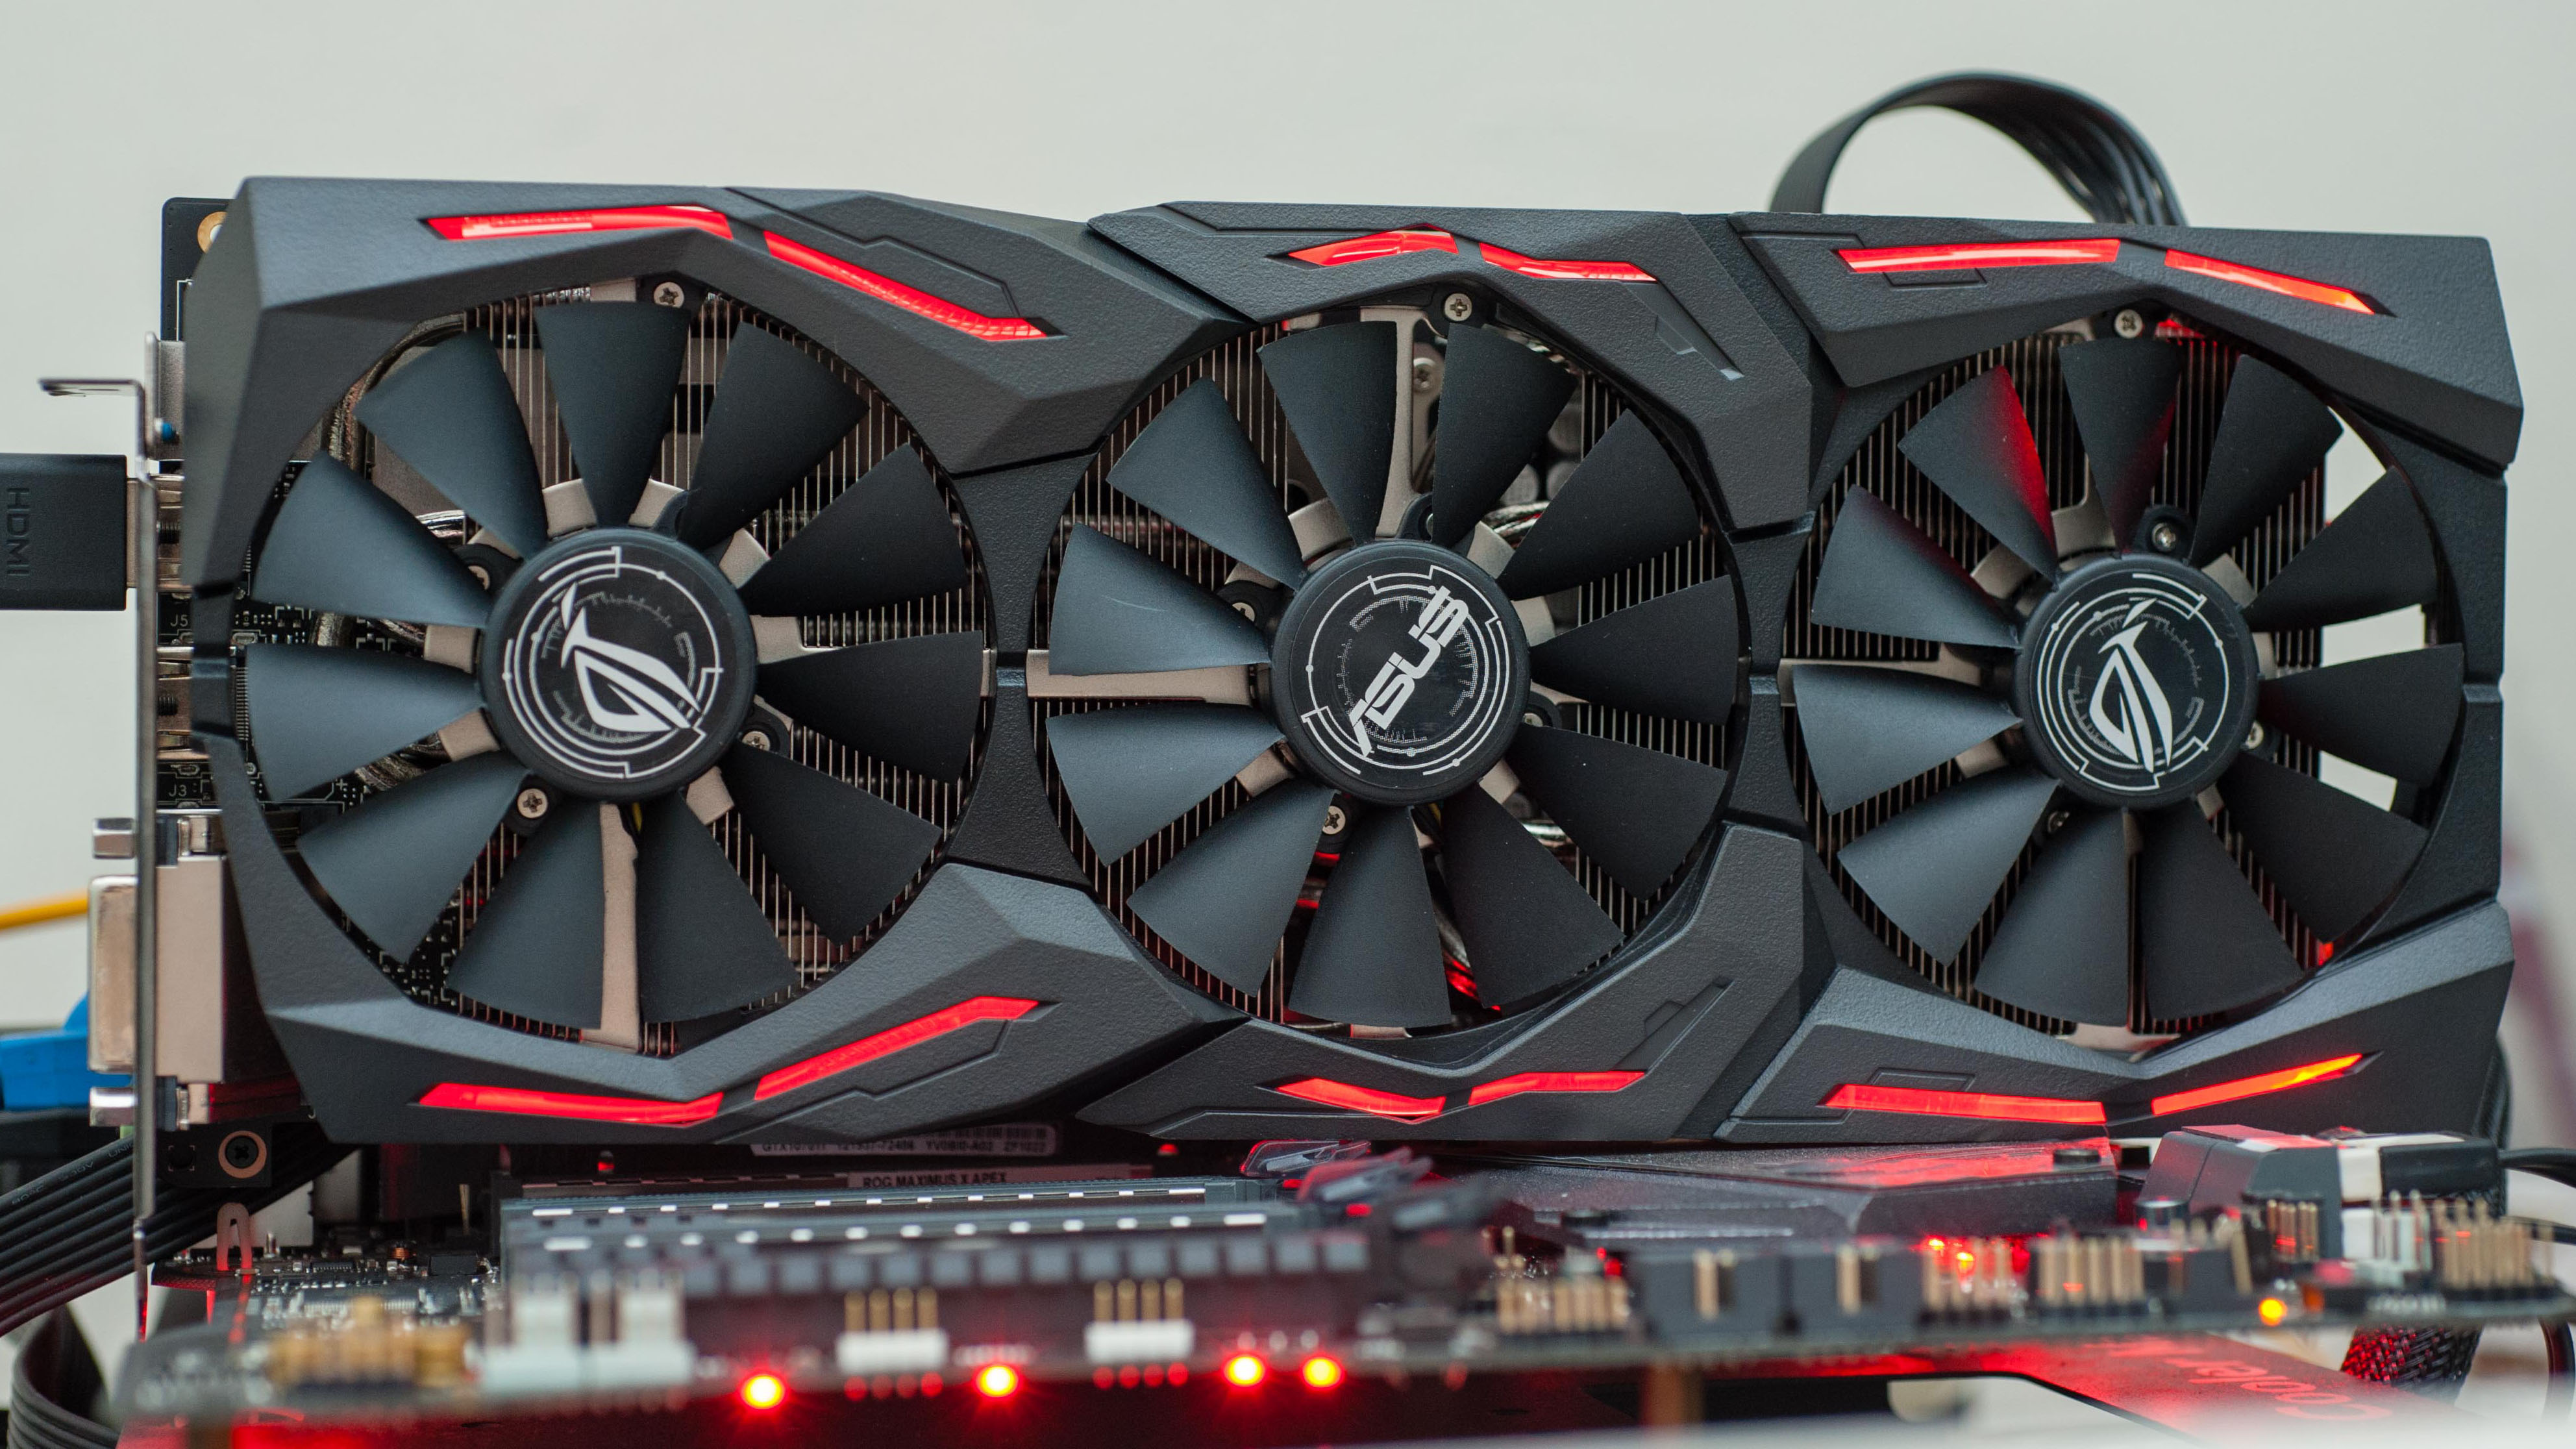 Review - ASUS ROG Strix GeForce GTX 1070 Ti Advanced Edition